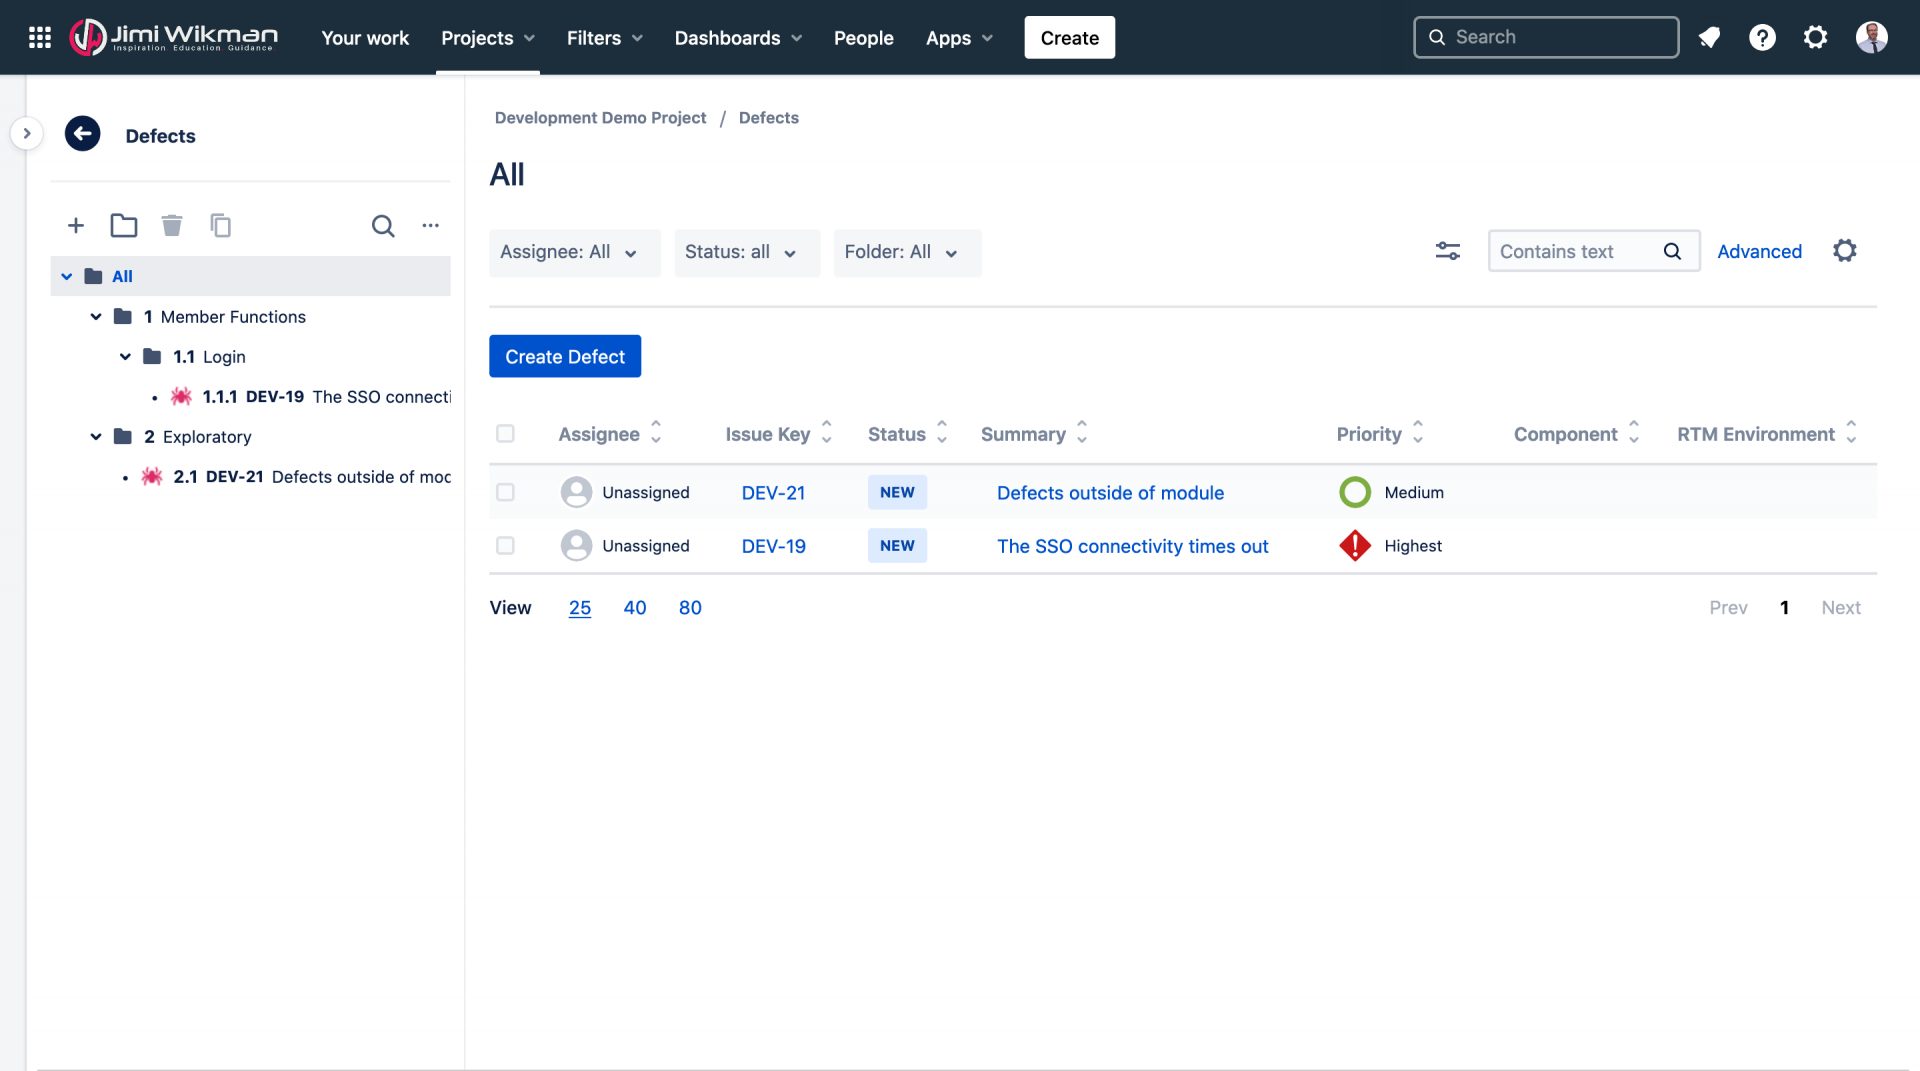 1796523439_Screenshot_2020-04-18DevelopmentDemoProject-Jira(9).thumb.png.0d485ef245d3a296a02092f2e75b7993.png